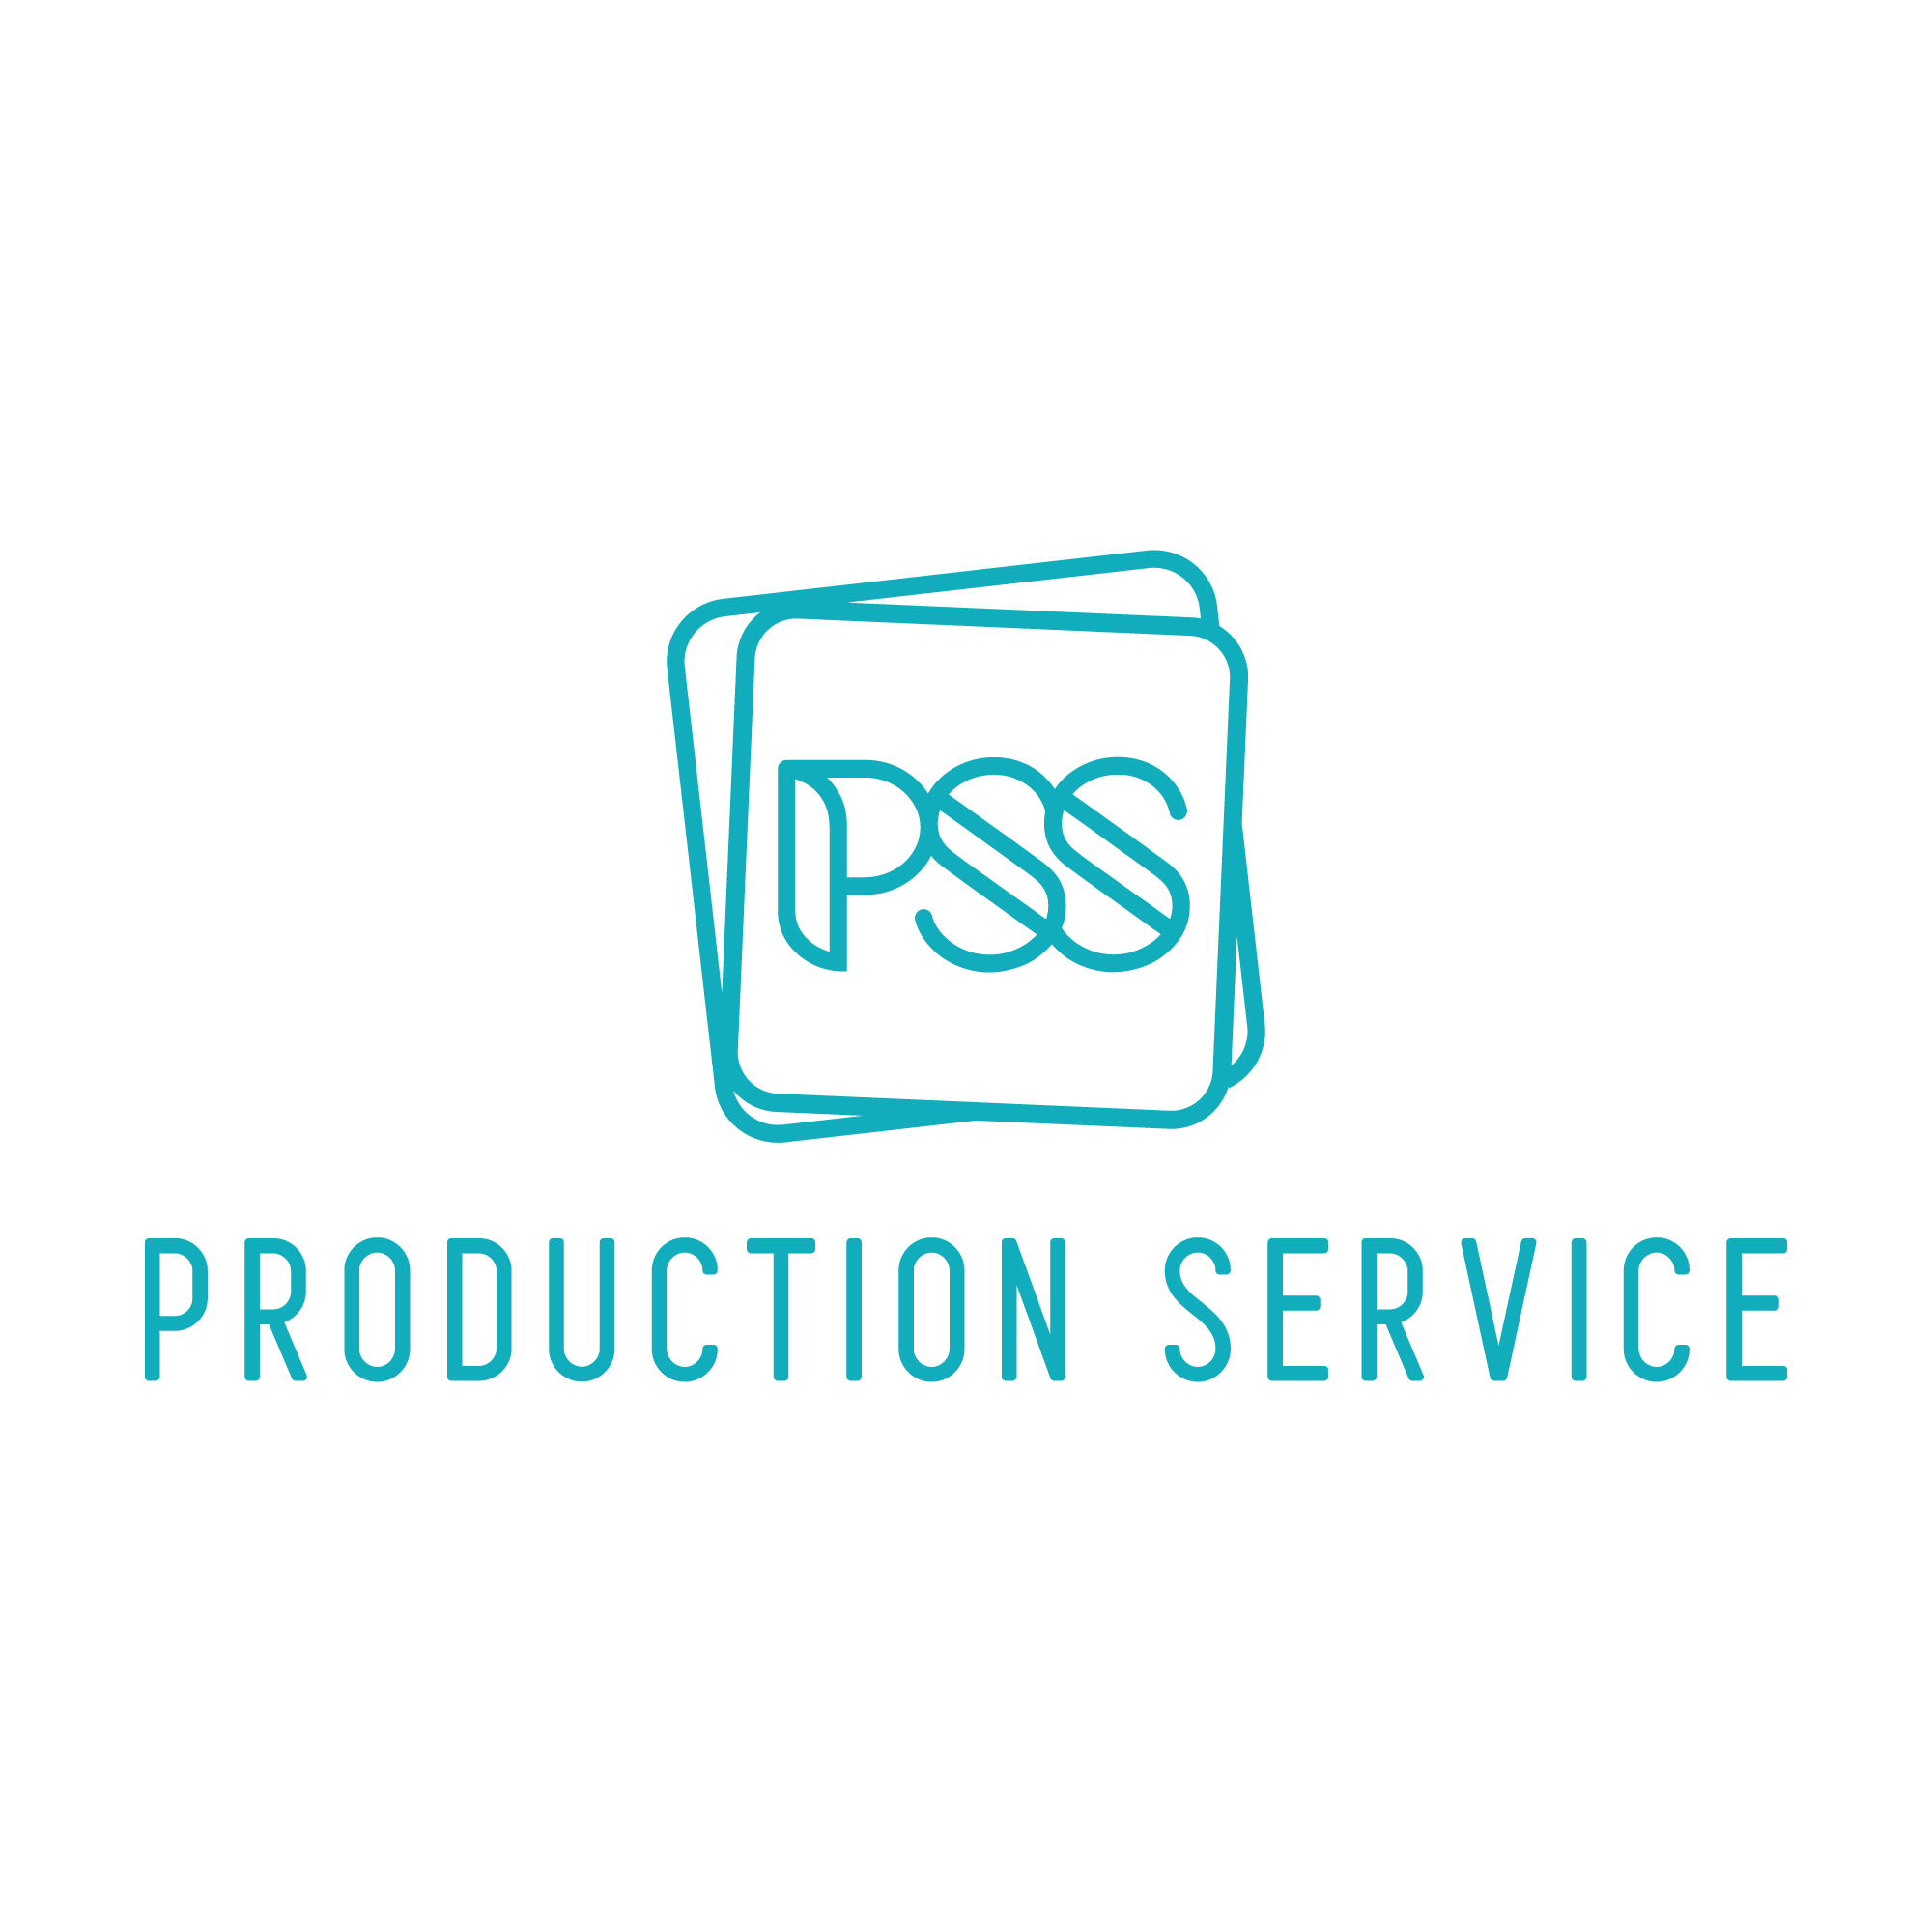 PSS Production Service Switzerland